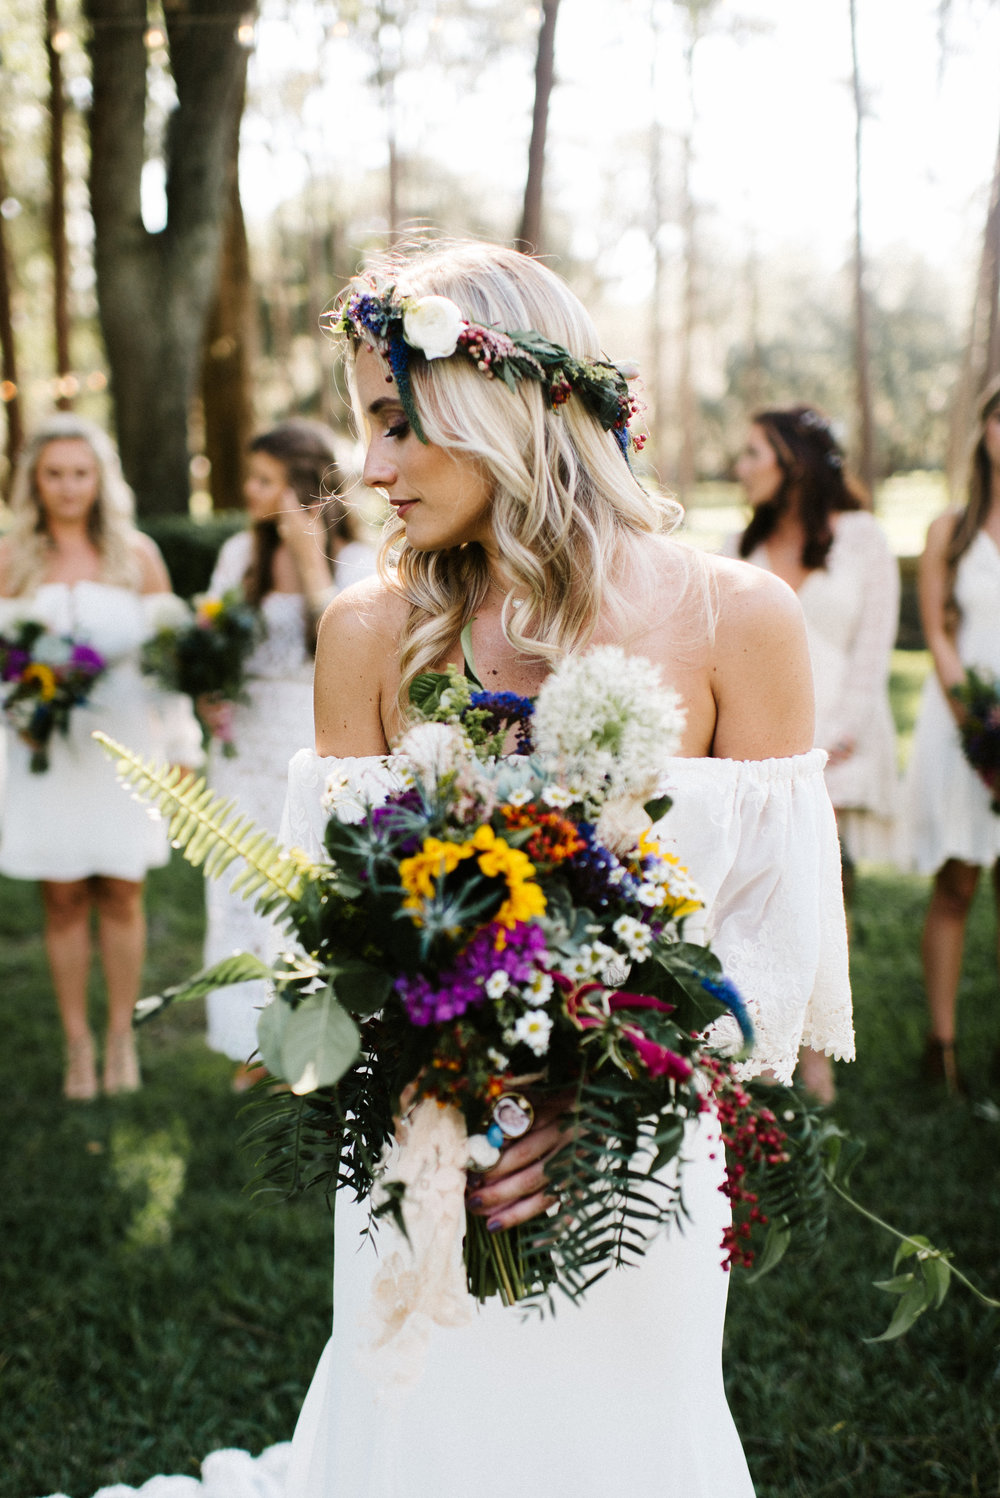 Rebecca-Read-Photography-brooke-jeremy-lang-farm-wedding-daughters-of-simone-lu-boho-wedding-southern-wedding-ivory-and-beau-bridal-boutique-savannah-bridal-boutique-savannah-wedding-dresses-lowcountry-bride-savannah-wedding-planner-12.jpg